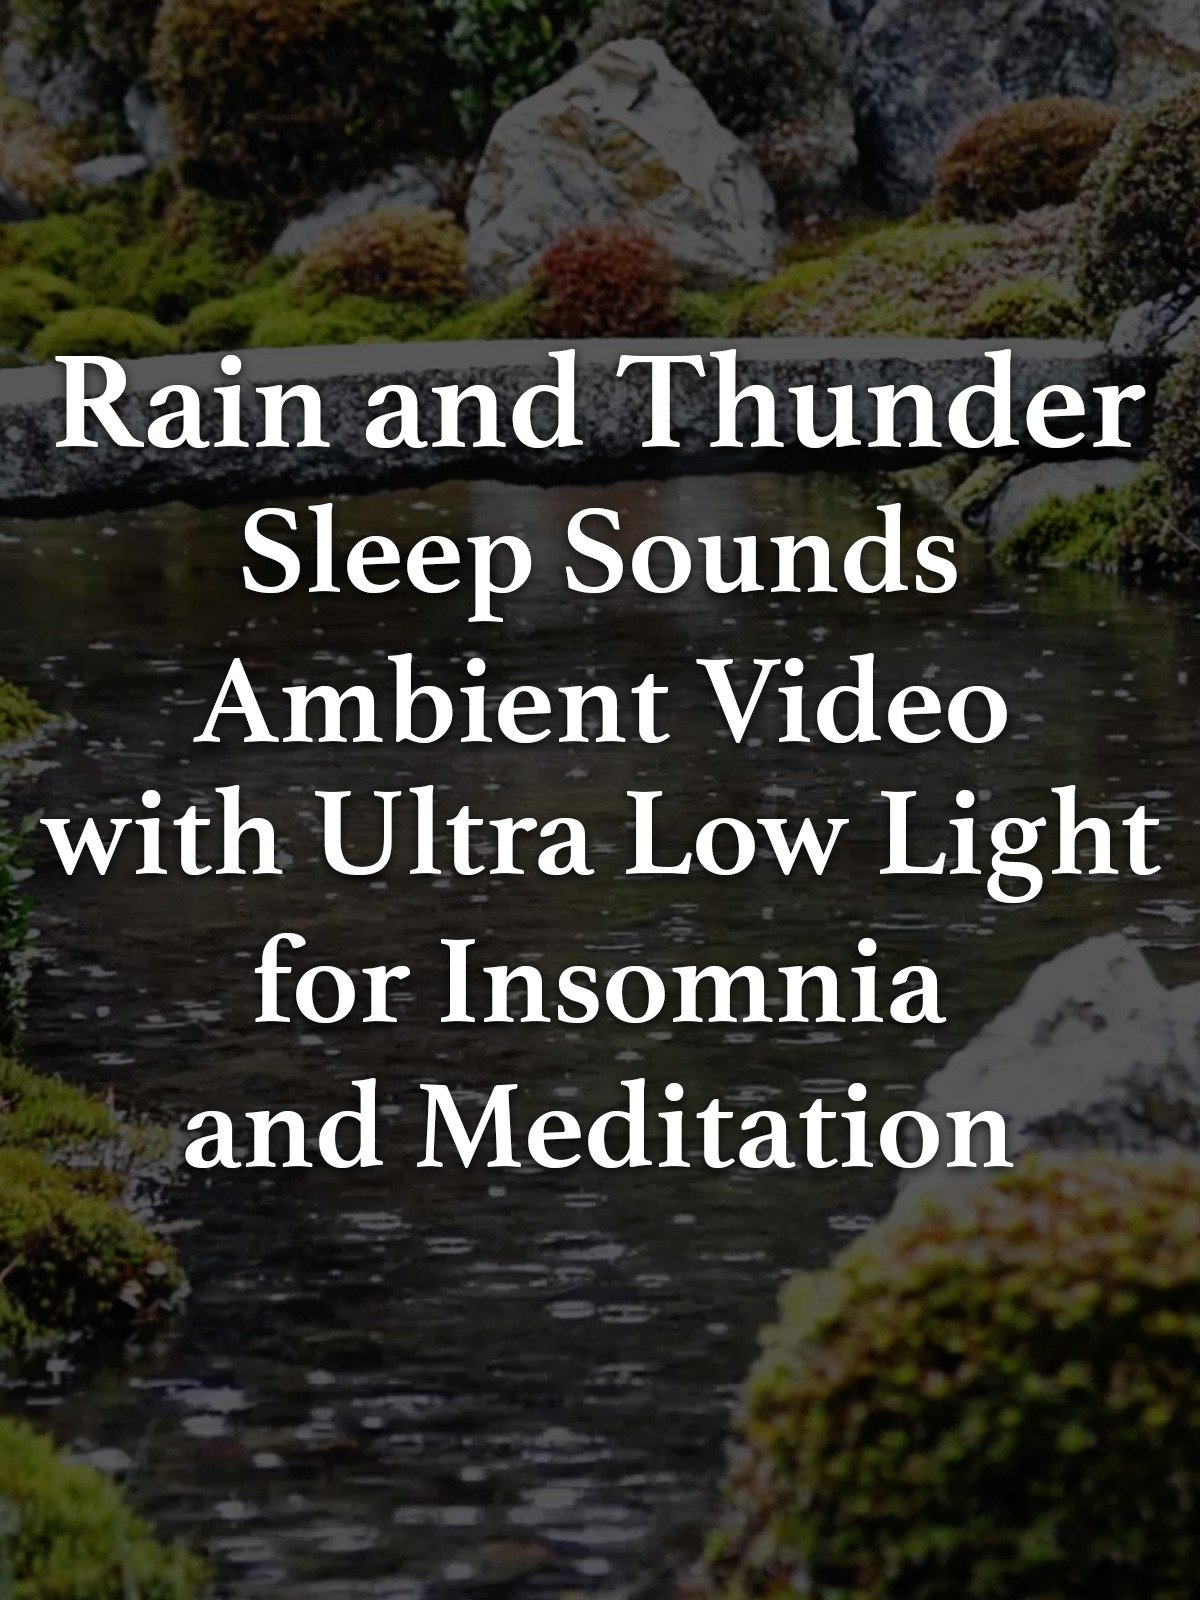 Rain and Thunder Sleep Sounds Ambient Video with Ultra Low Light for Insomnia and Meditation